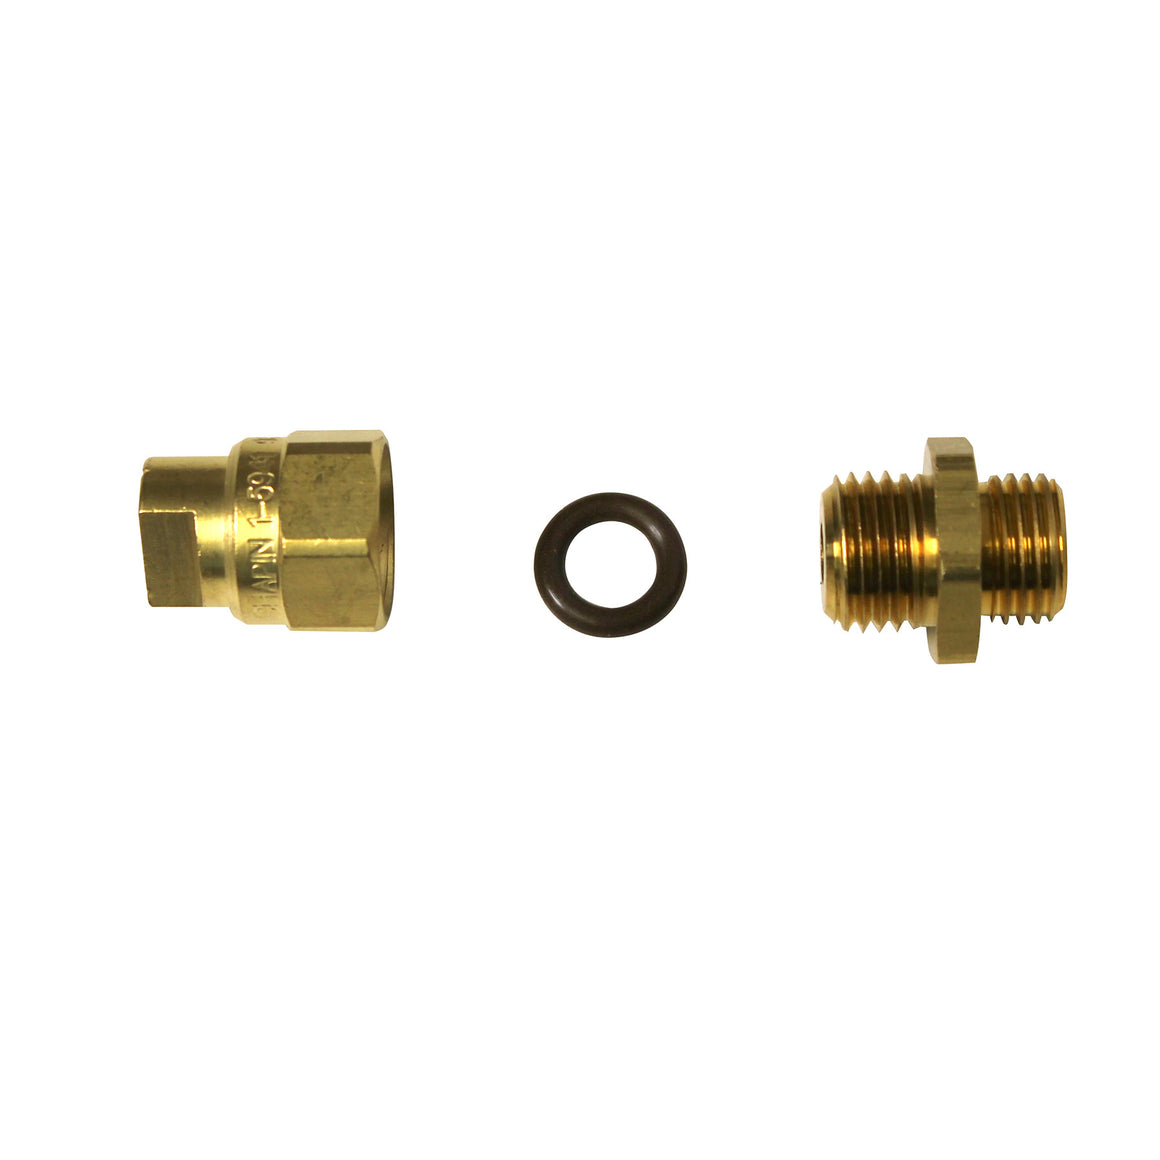 Chapin 1949 Spares - Brass Nozzle Tip 0.5 GPM